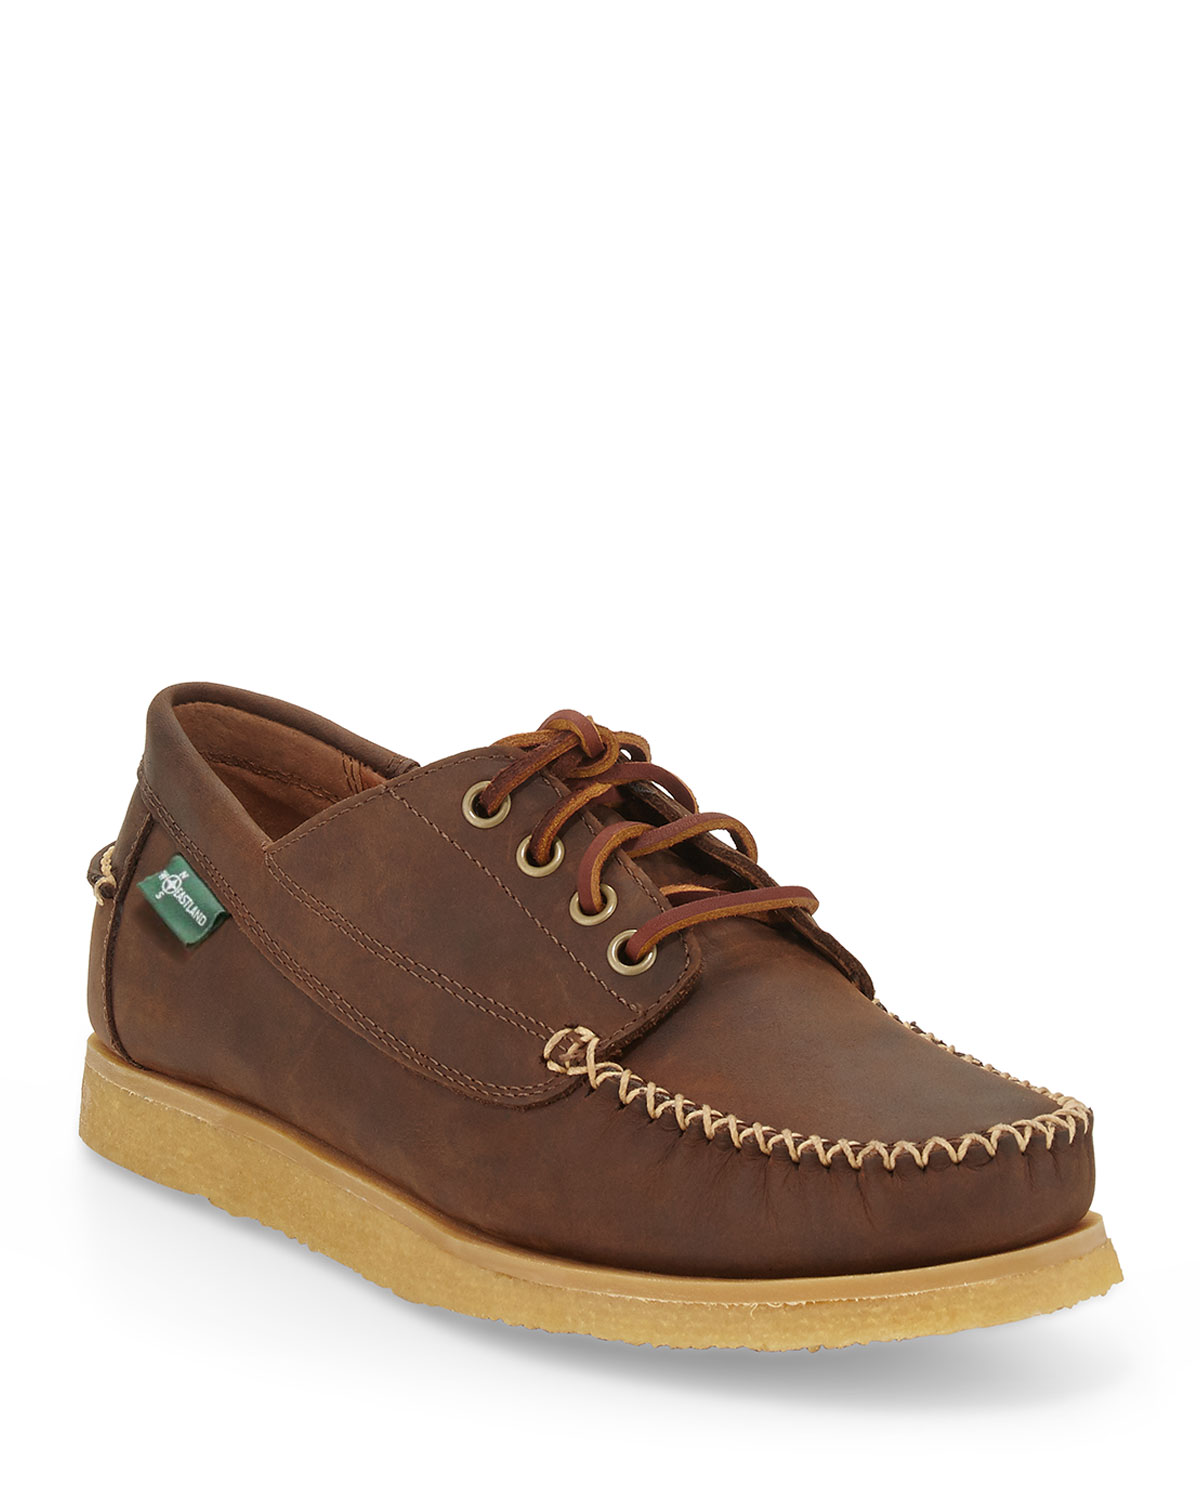 Fletcher 1955 Camp Moccasin, Brown